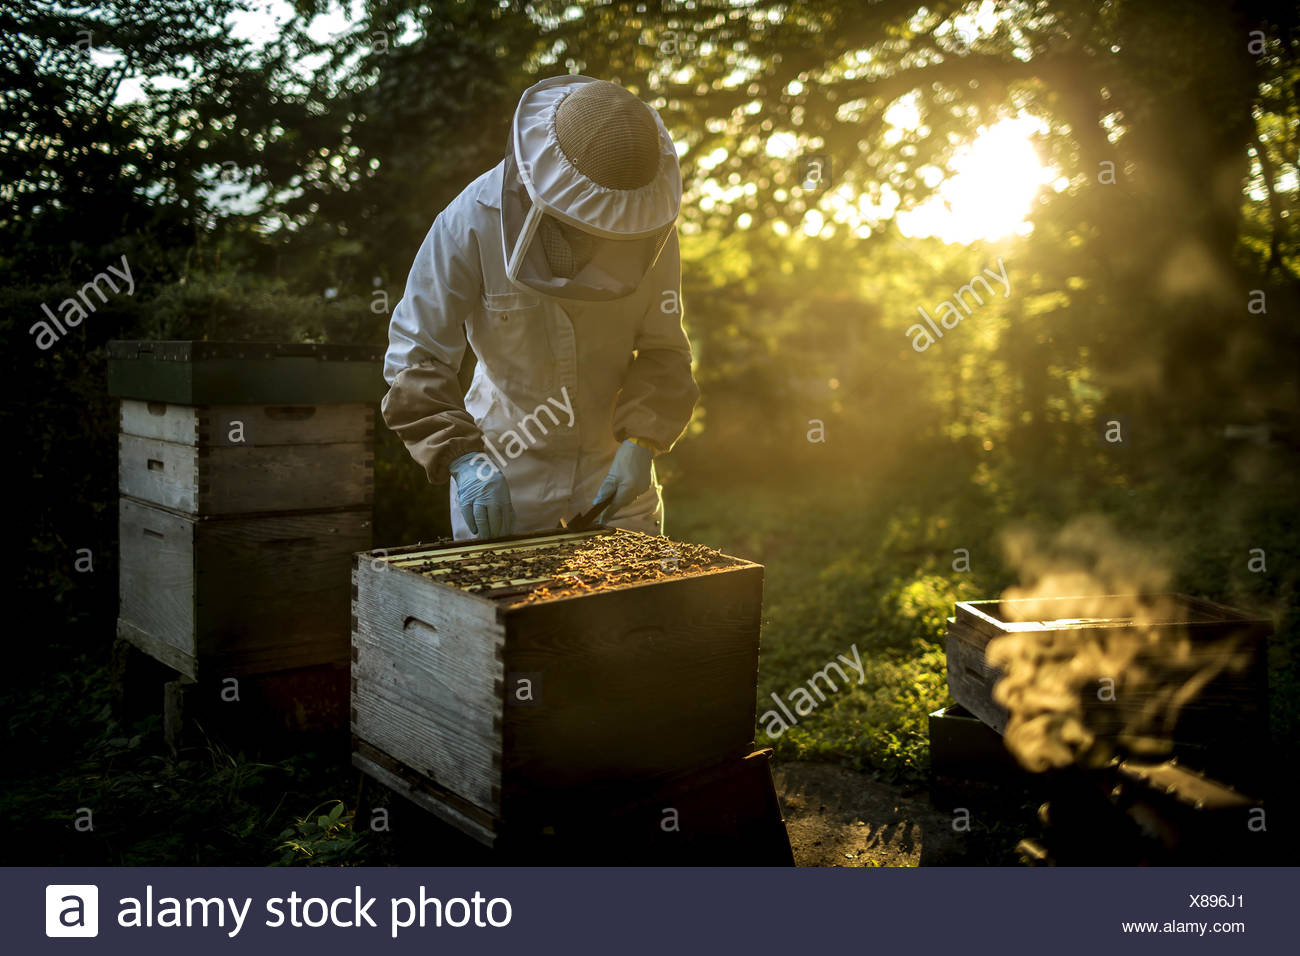 Beekeeper wearing a beekeeping suit with mesh face mask, inspecting an open beehive. Preparing to collect honey. - Stock Image